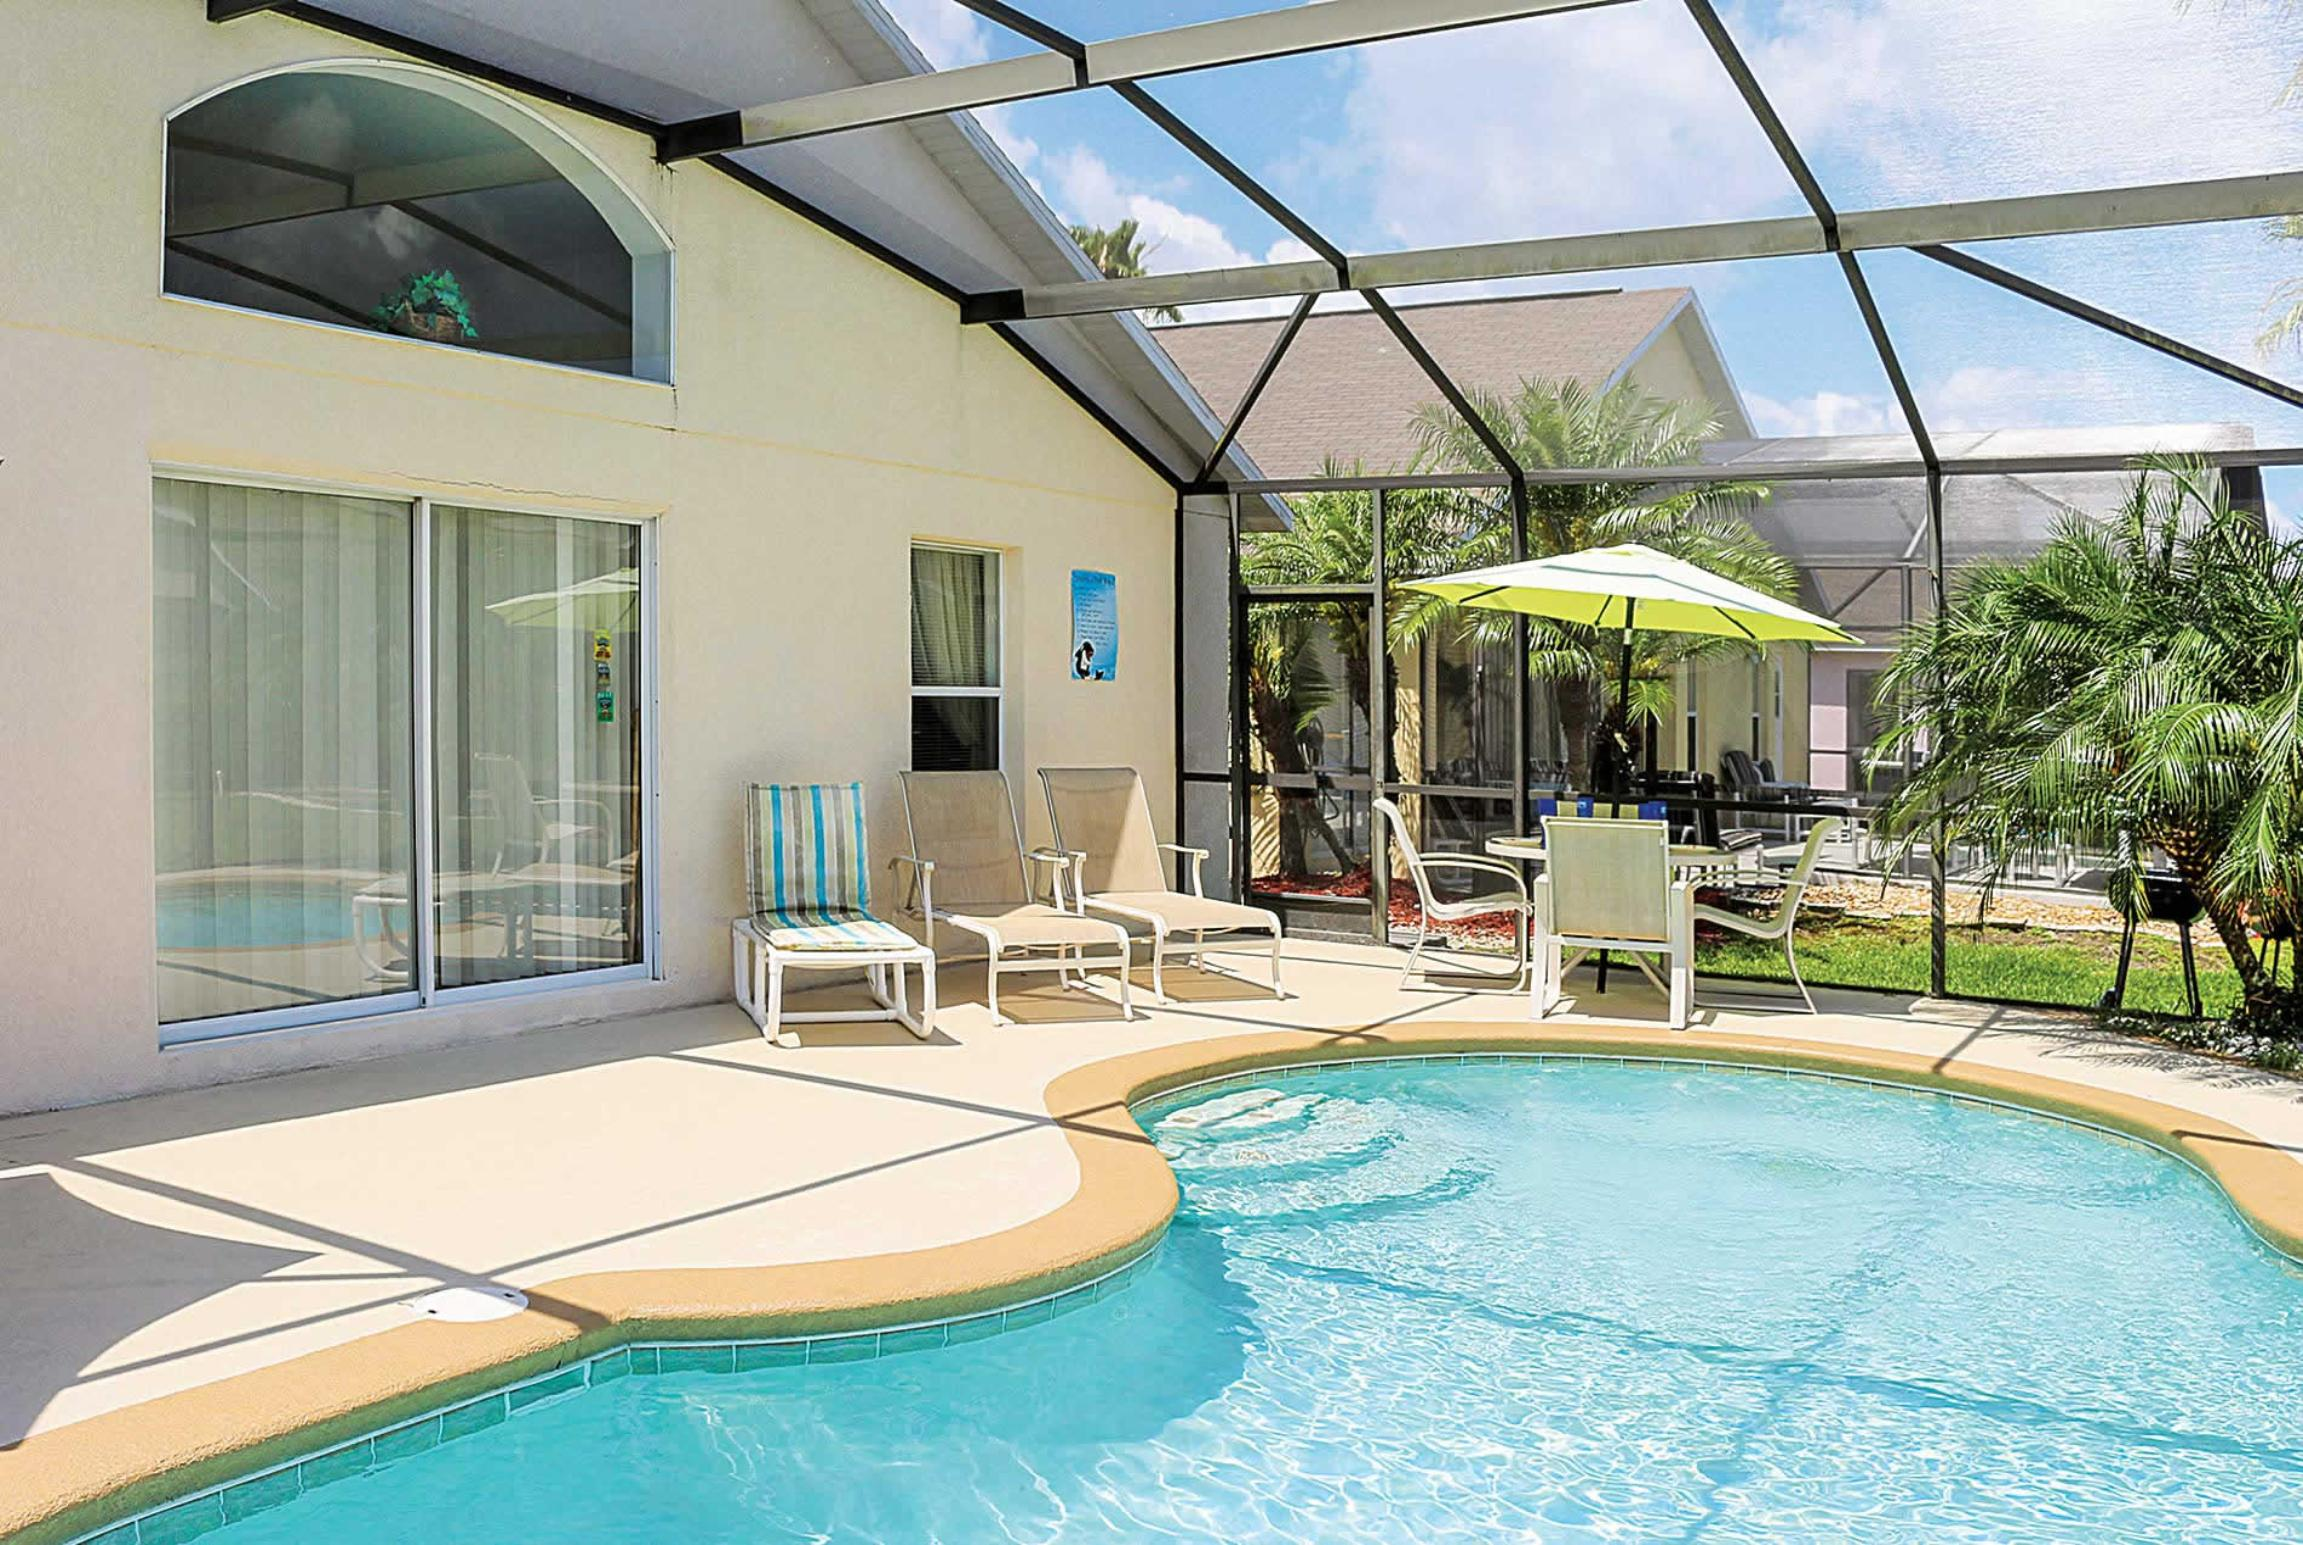 Read more about Sandpiper villa